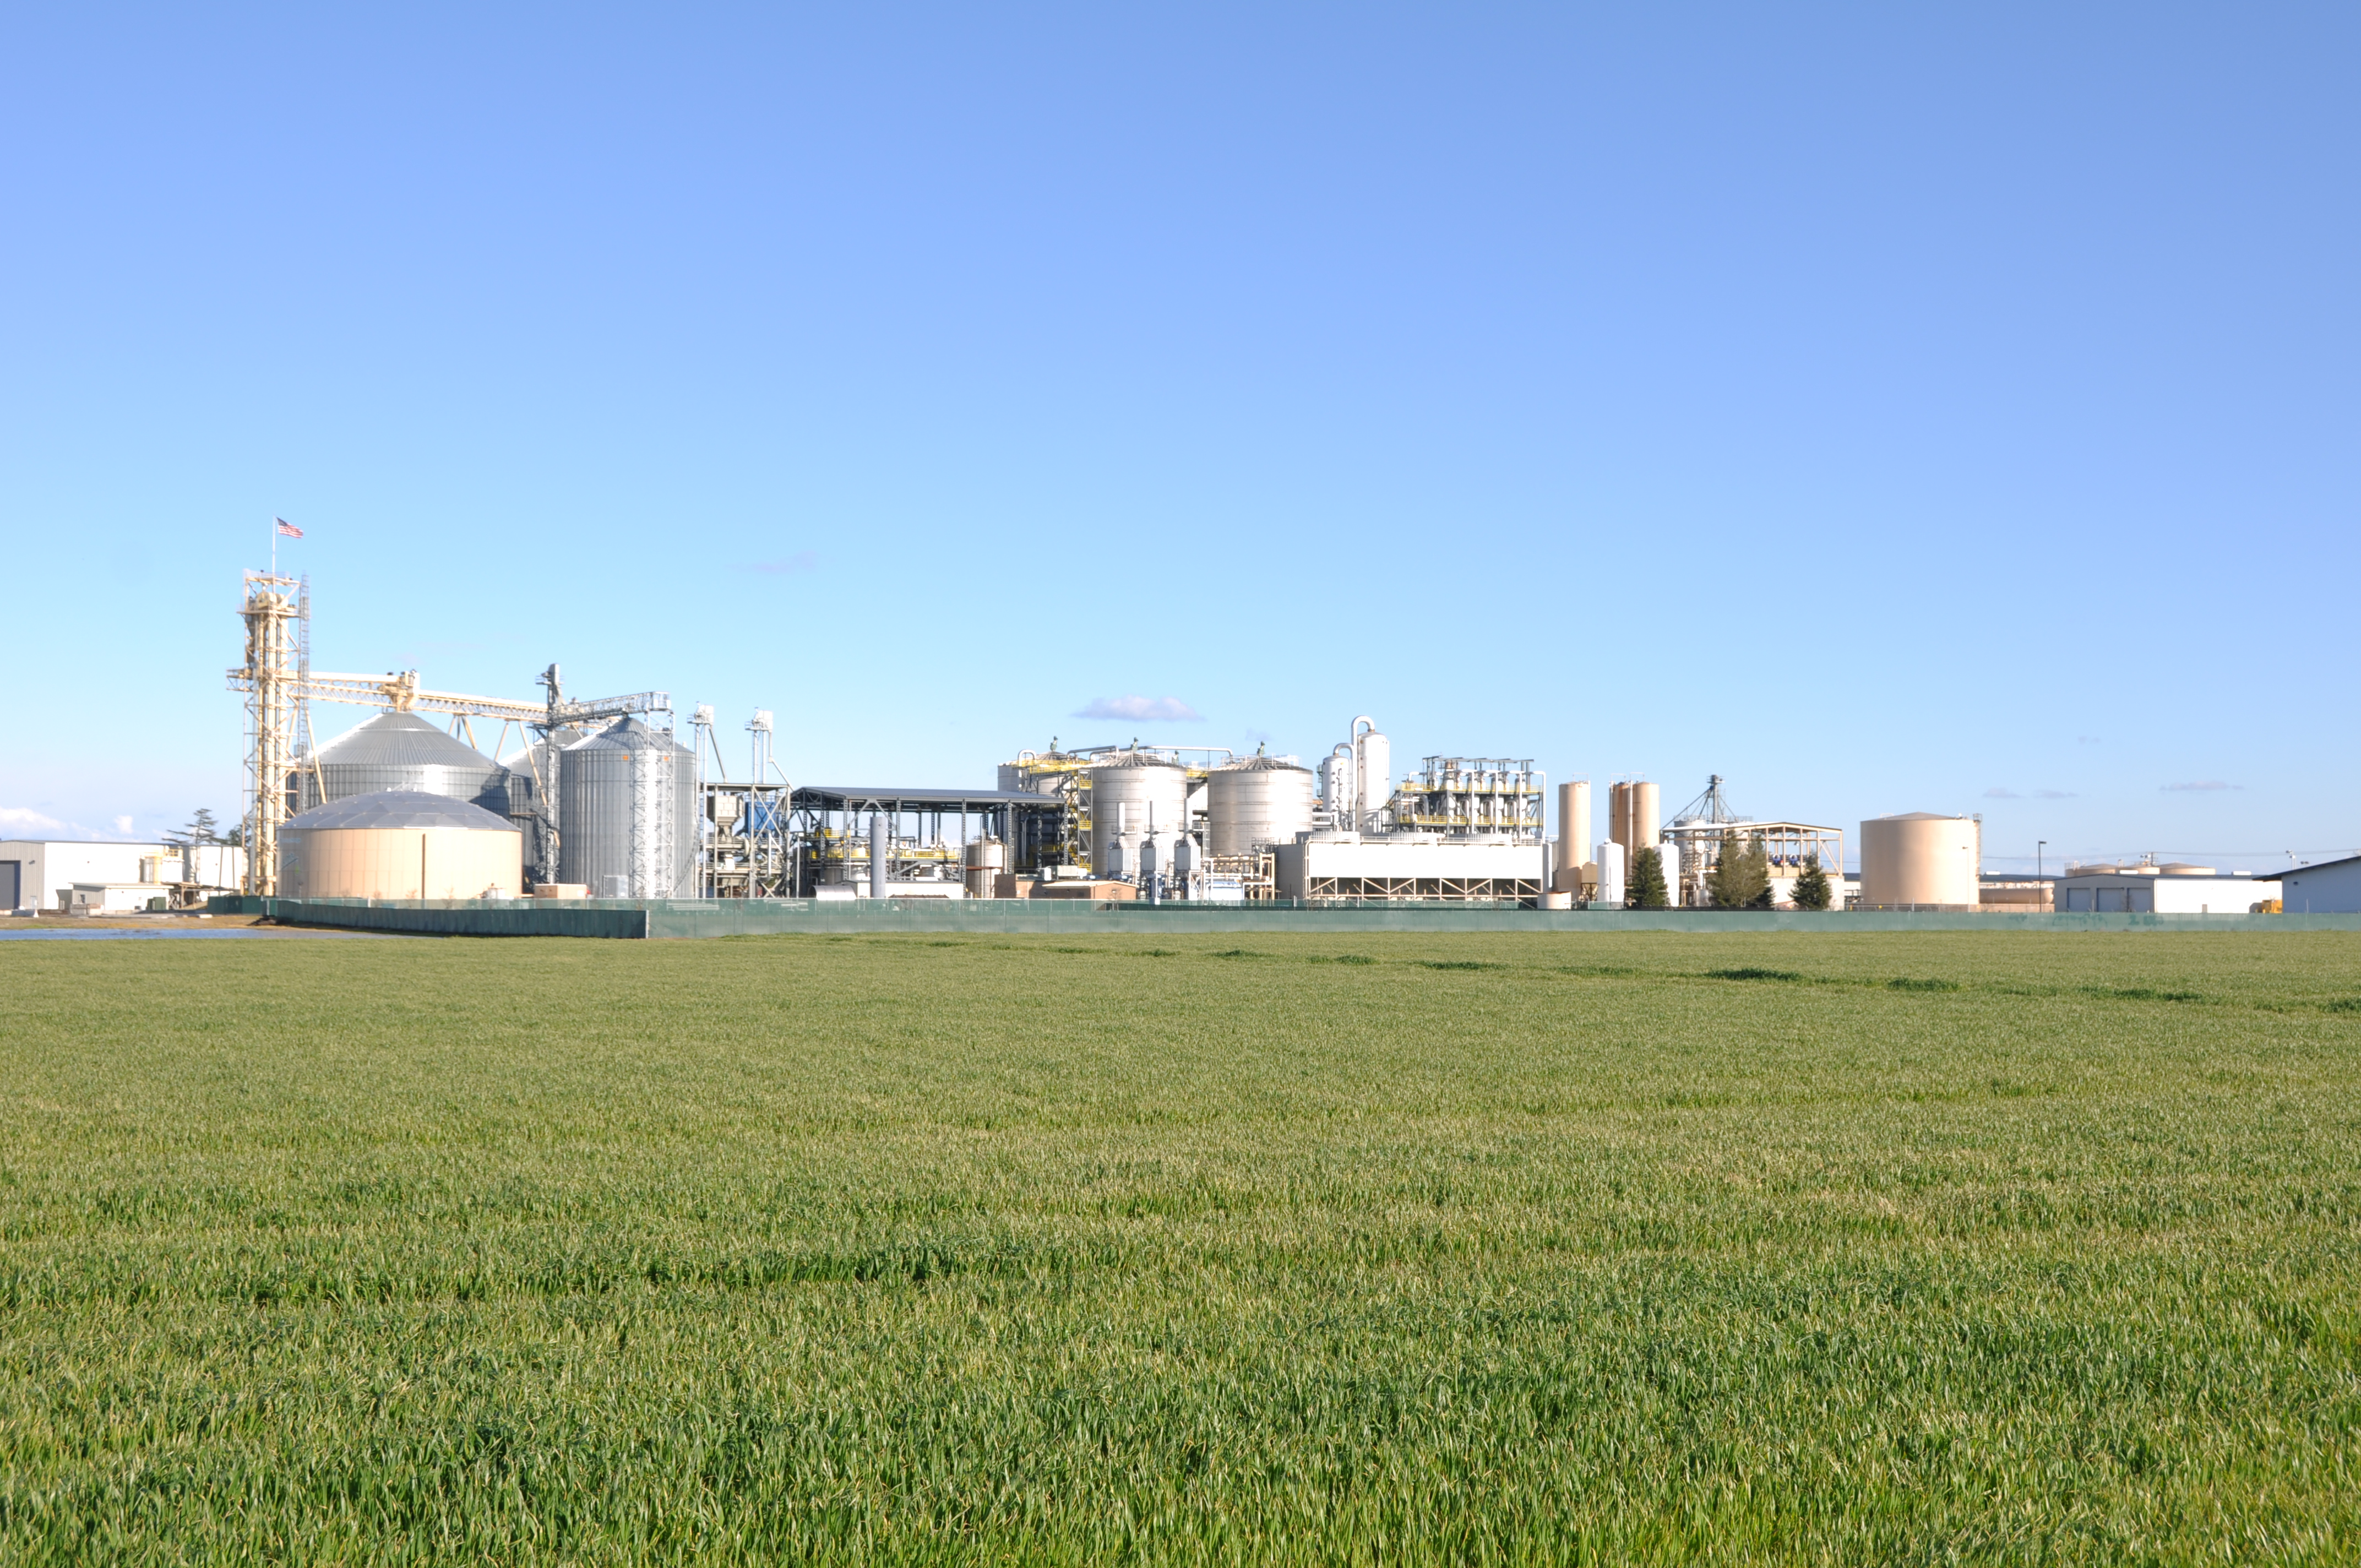 Ethanol production facility in Keyes, CA